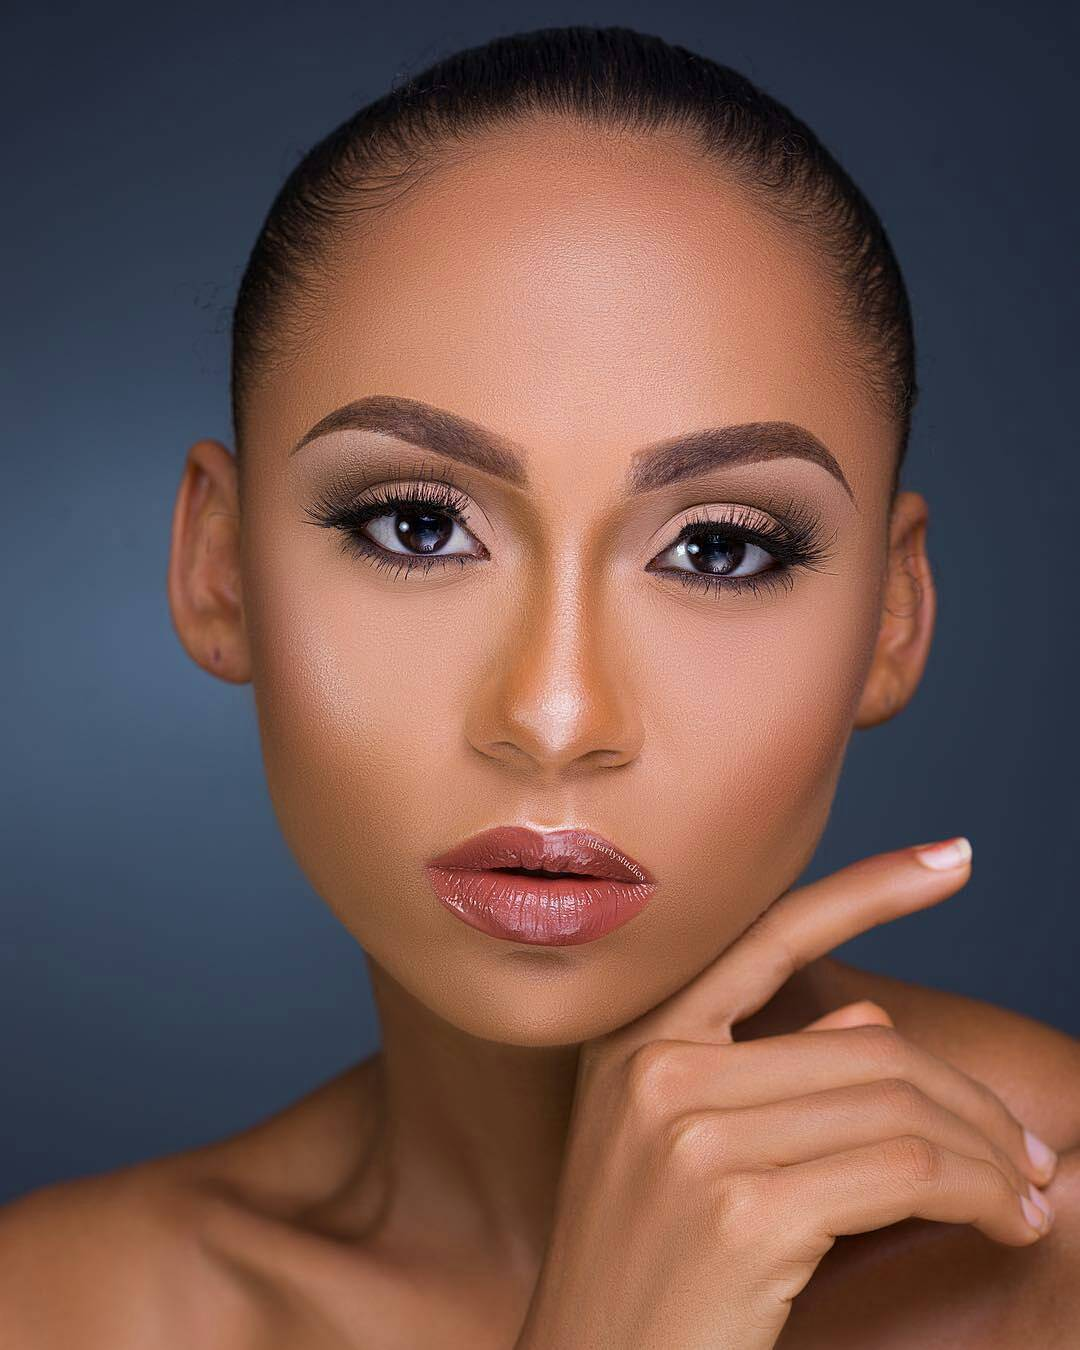 latest fashion makeup in Nigeria